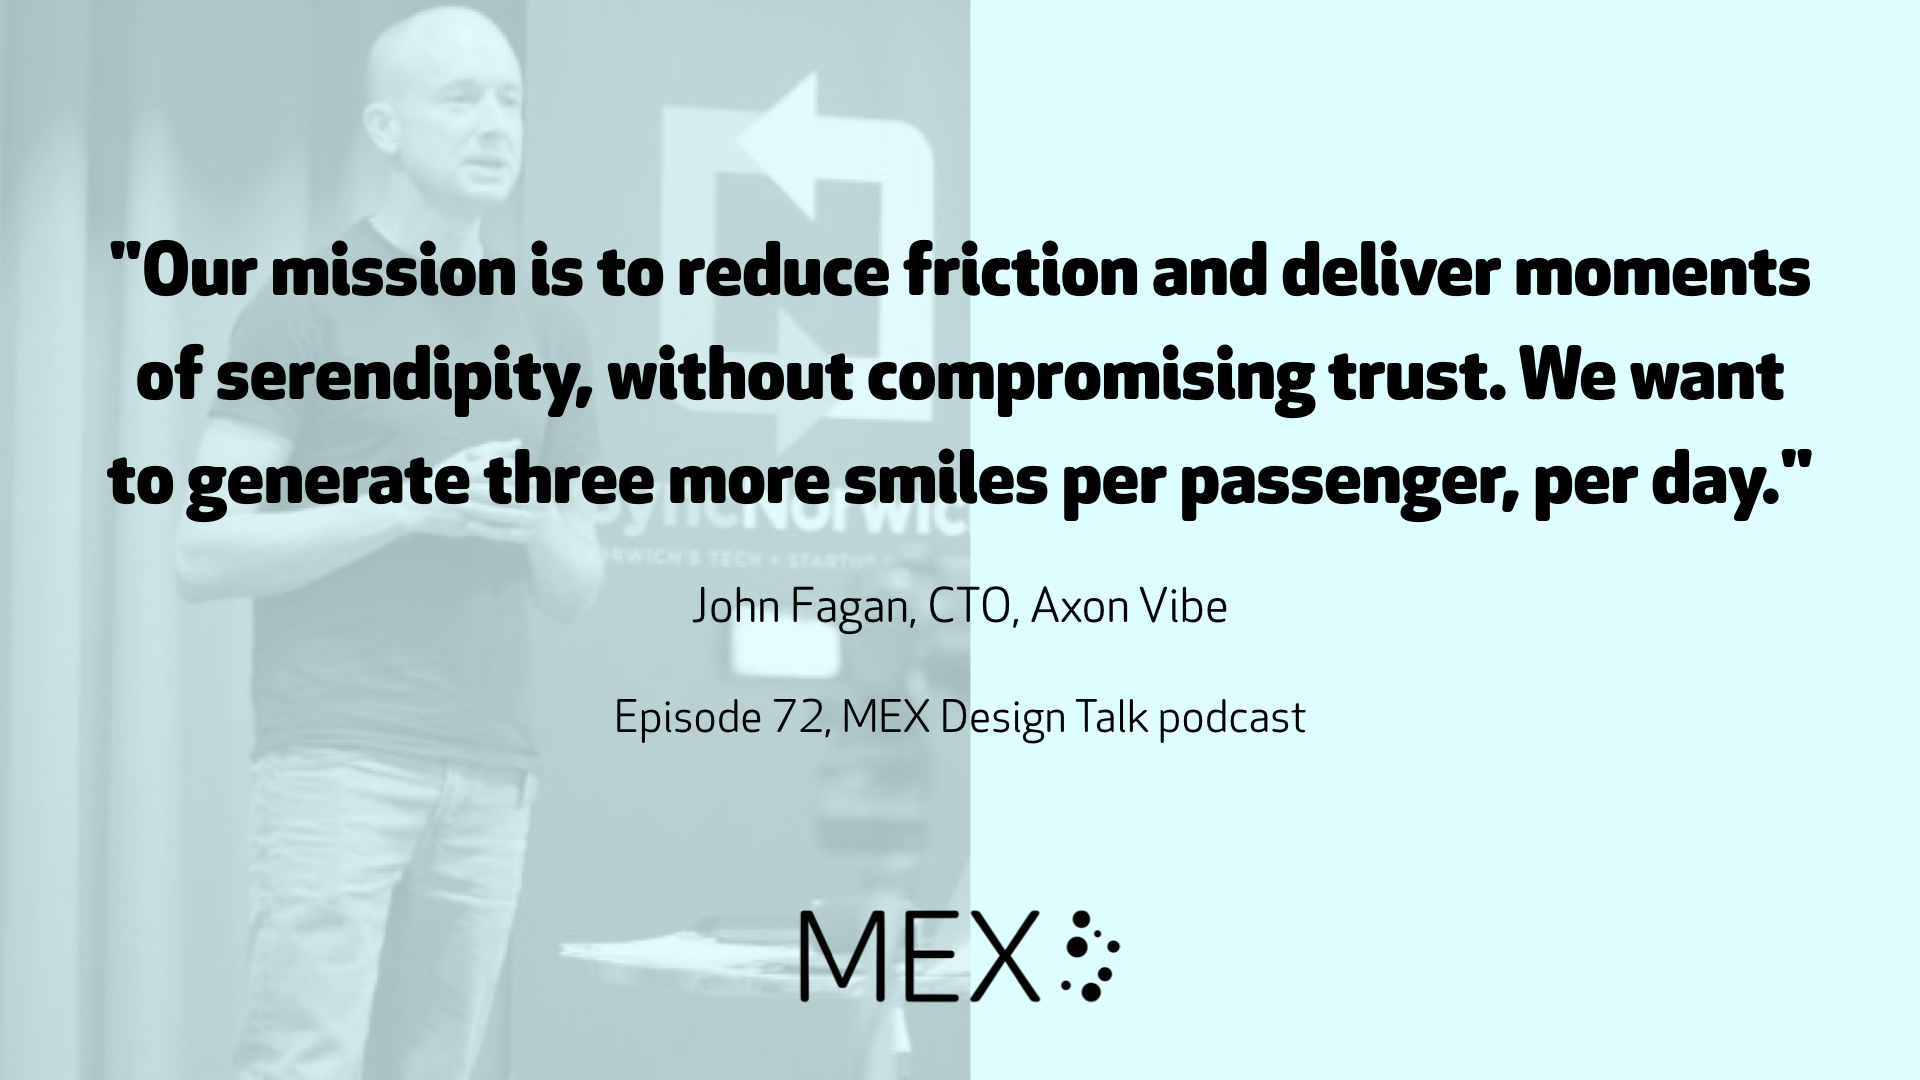 """Our mission is to reduce friction and deliver moments of serendipity, without compromising trust. We want to generate three more smiles per passenger, per day."" John Fagan, CTO, Axon Vibe Episode 72, MEX Design Talk podcast"